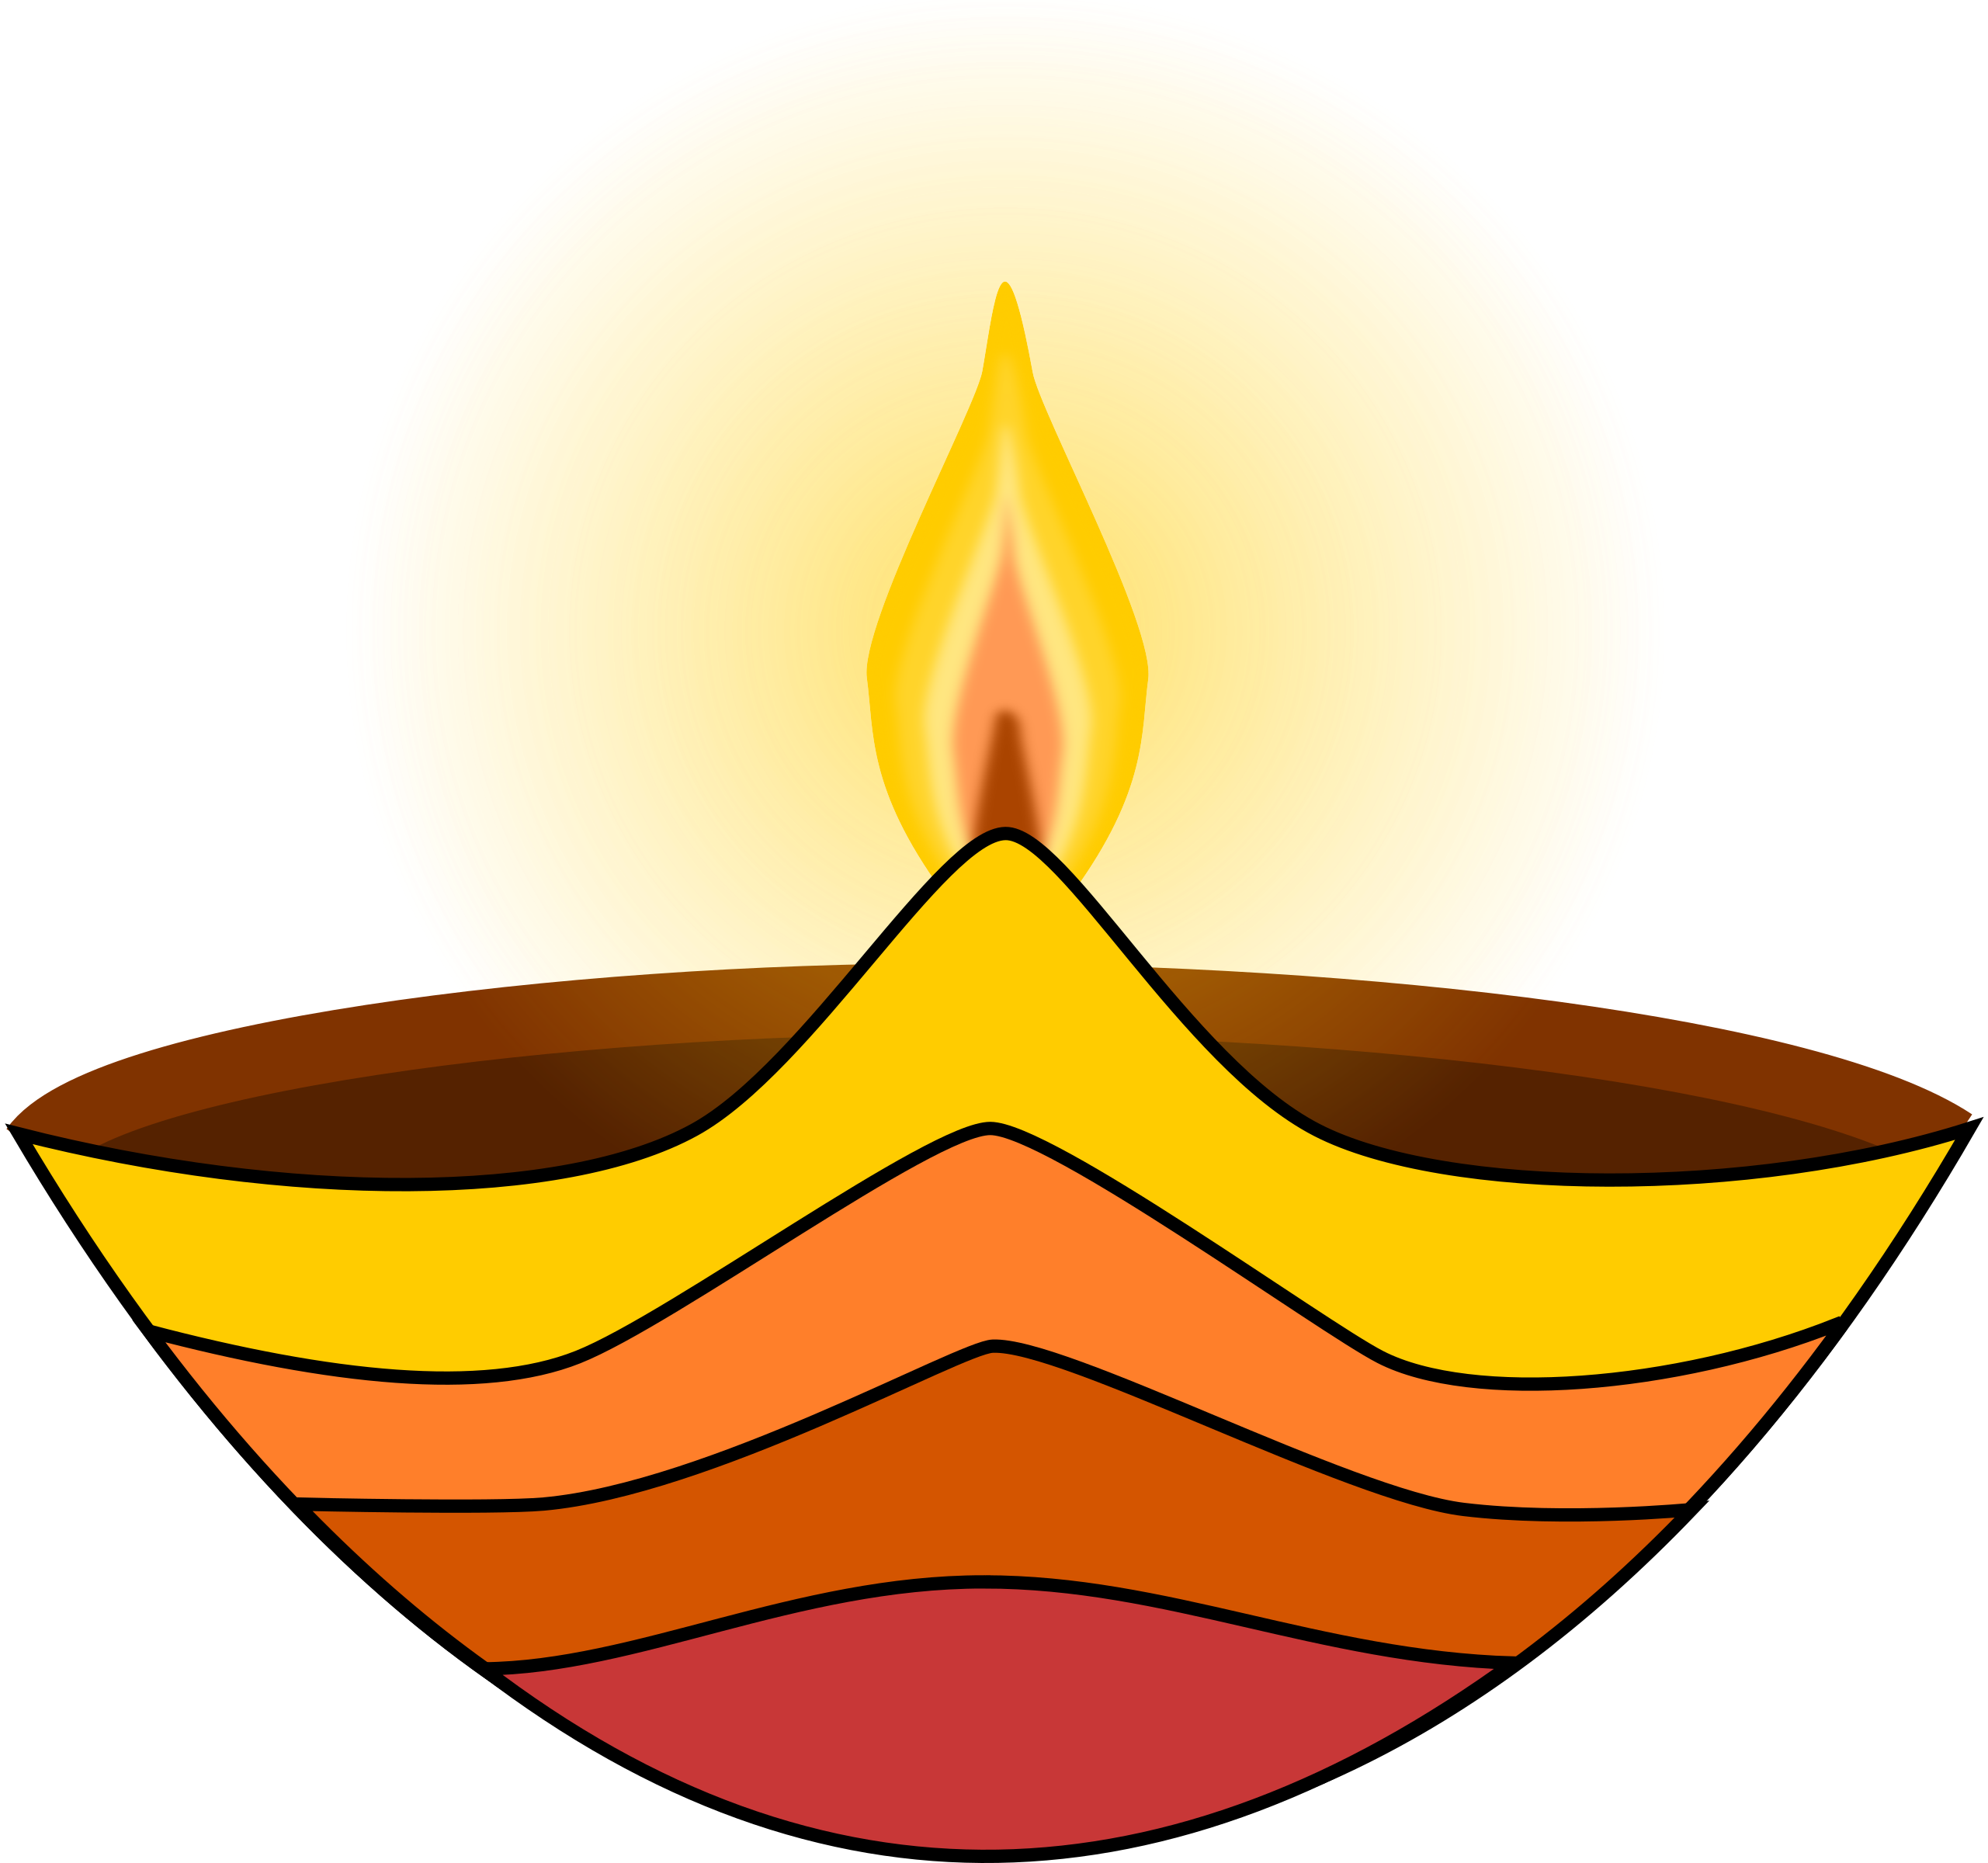 lighting clipart diwali